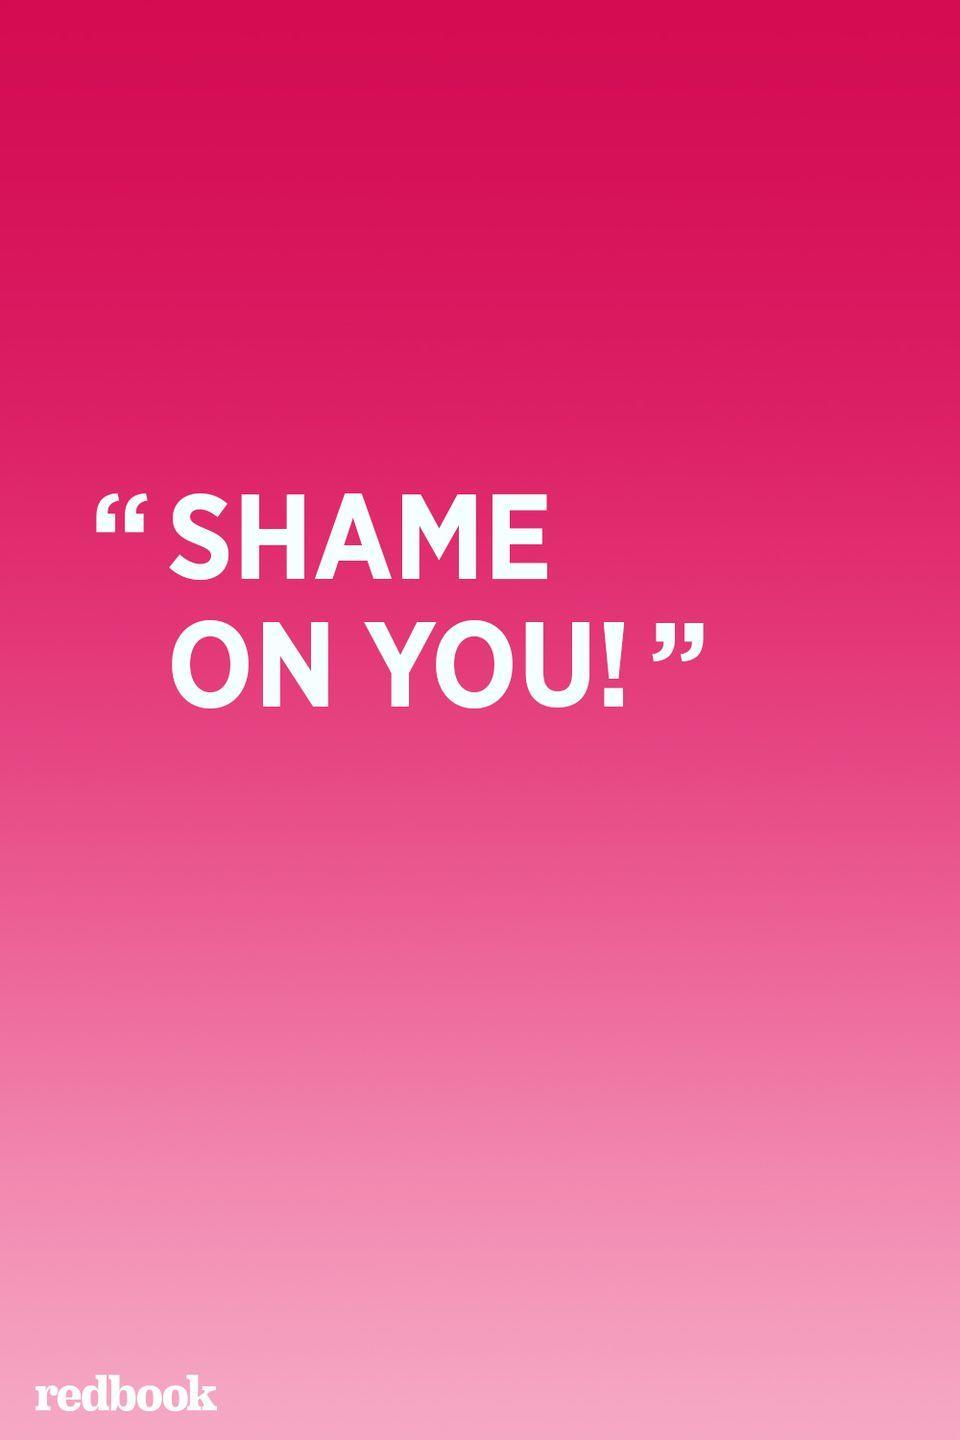 """<p>Shame is a concept that younger children don't yet understand. When you tell them they should be ashamed of themselves, all they hear is that mom or dad is mad at them and they don't know why. Even worse, shaming may lead older children to be more defiant and aggressive, according to <a href=""""https://www.sciencedaily.com/releases/2008/12/081219172143.htm"""" rel=""""nofollow noopener"""" target=""""_blank"""" data-ylk=""""slk:a study done by the University of Michigan"""" class=""""link rapid-noclick-resp"""">a study done by the University of Michigan</a>.<br></p>"""